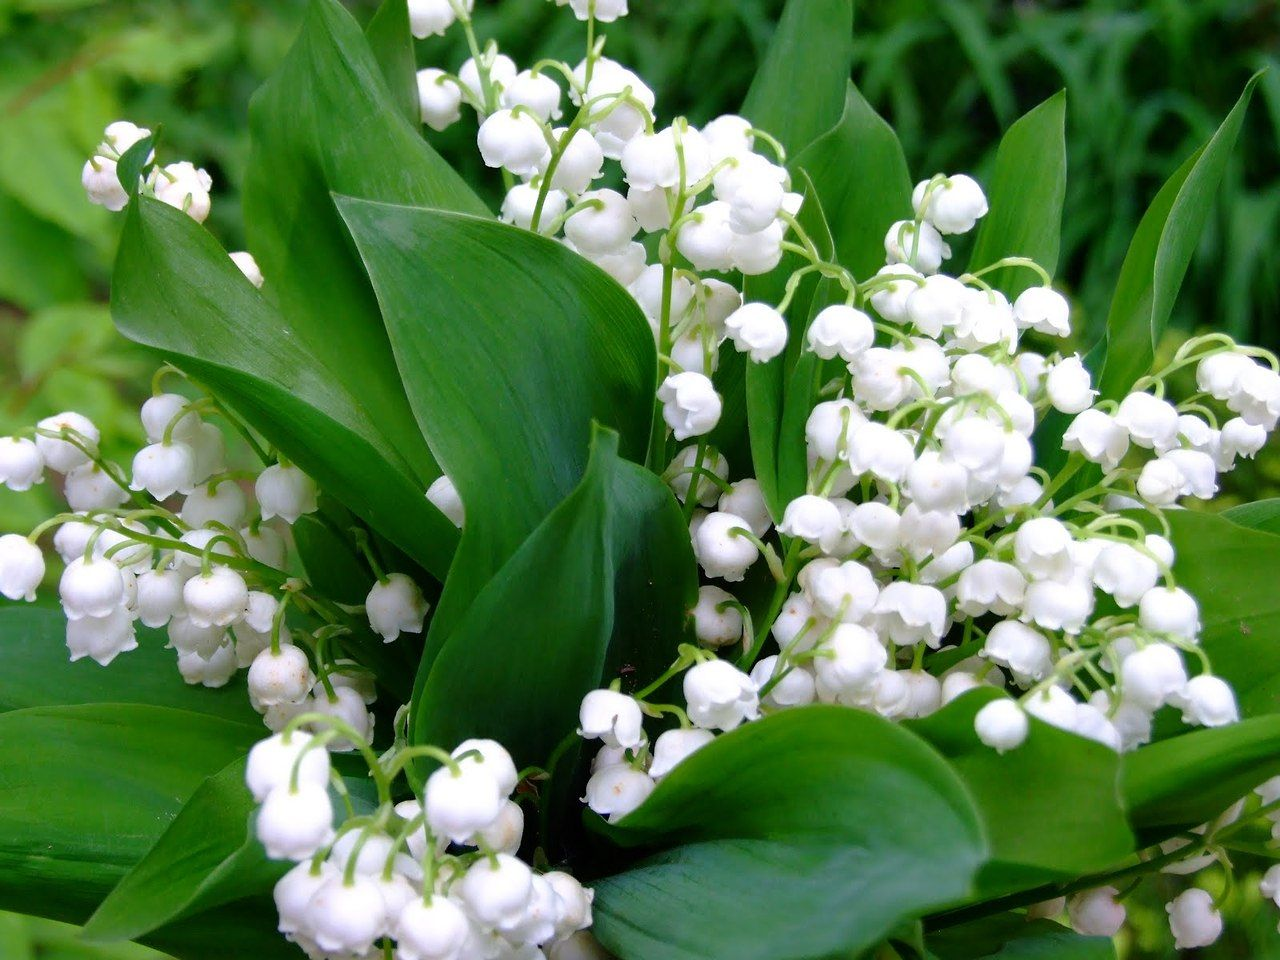 Lilies of the valley things i love pinterest item not found item 100 lily of the valley convallaria majalis landscape special lot live adult plants flowers 11090103 izmirmasajfo